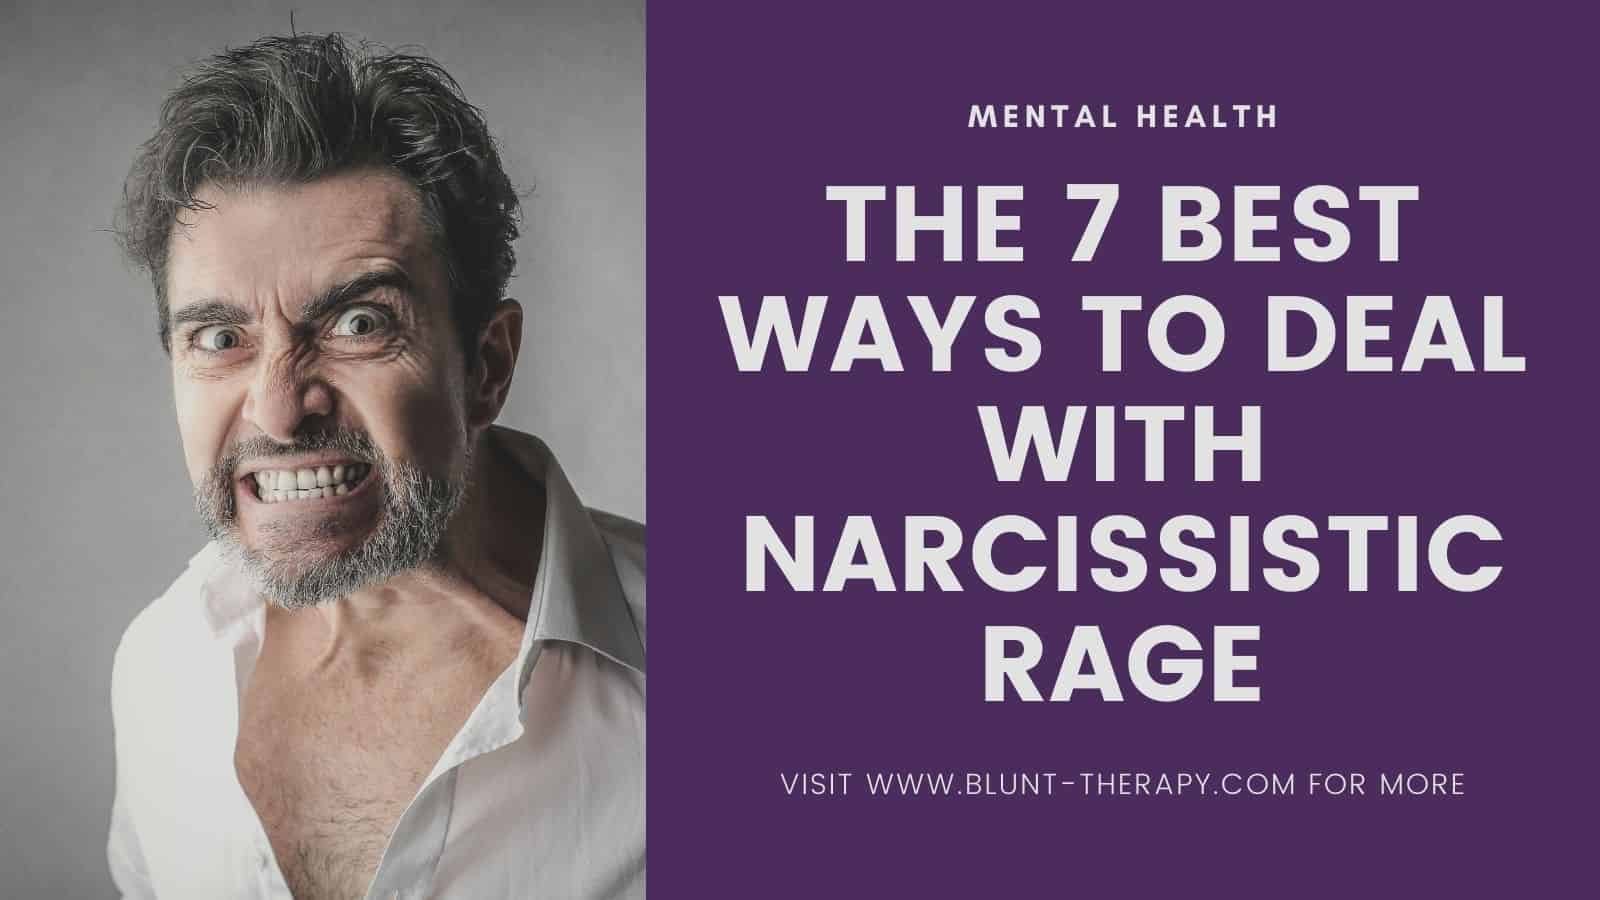 The 7 Best Ways To Deal With Narcissistic Rage